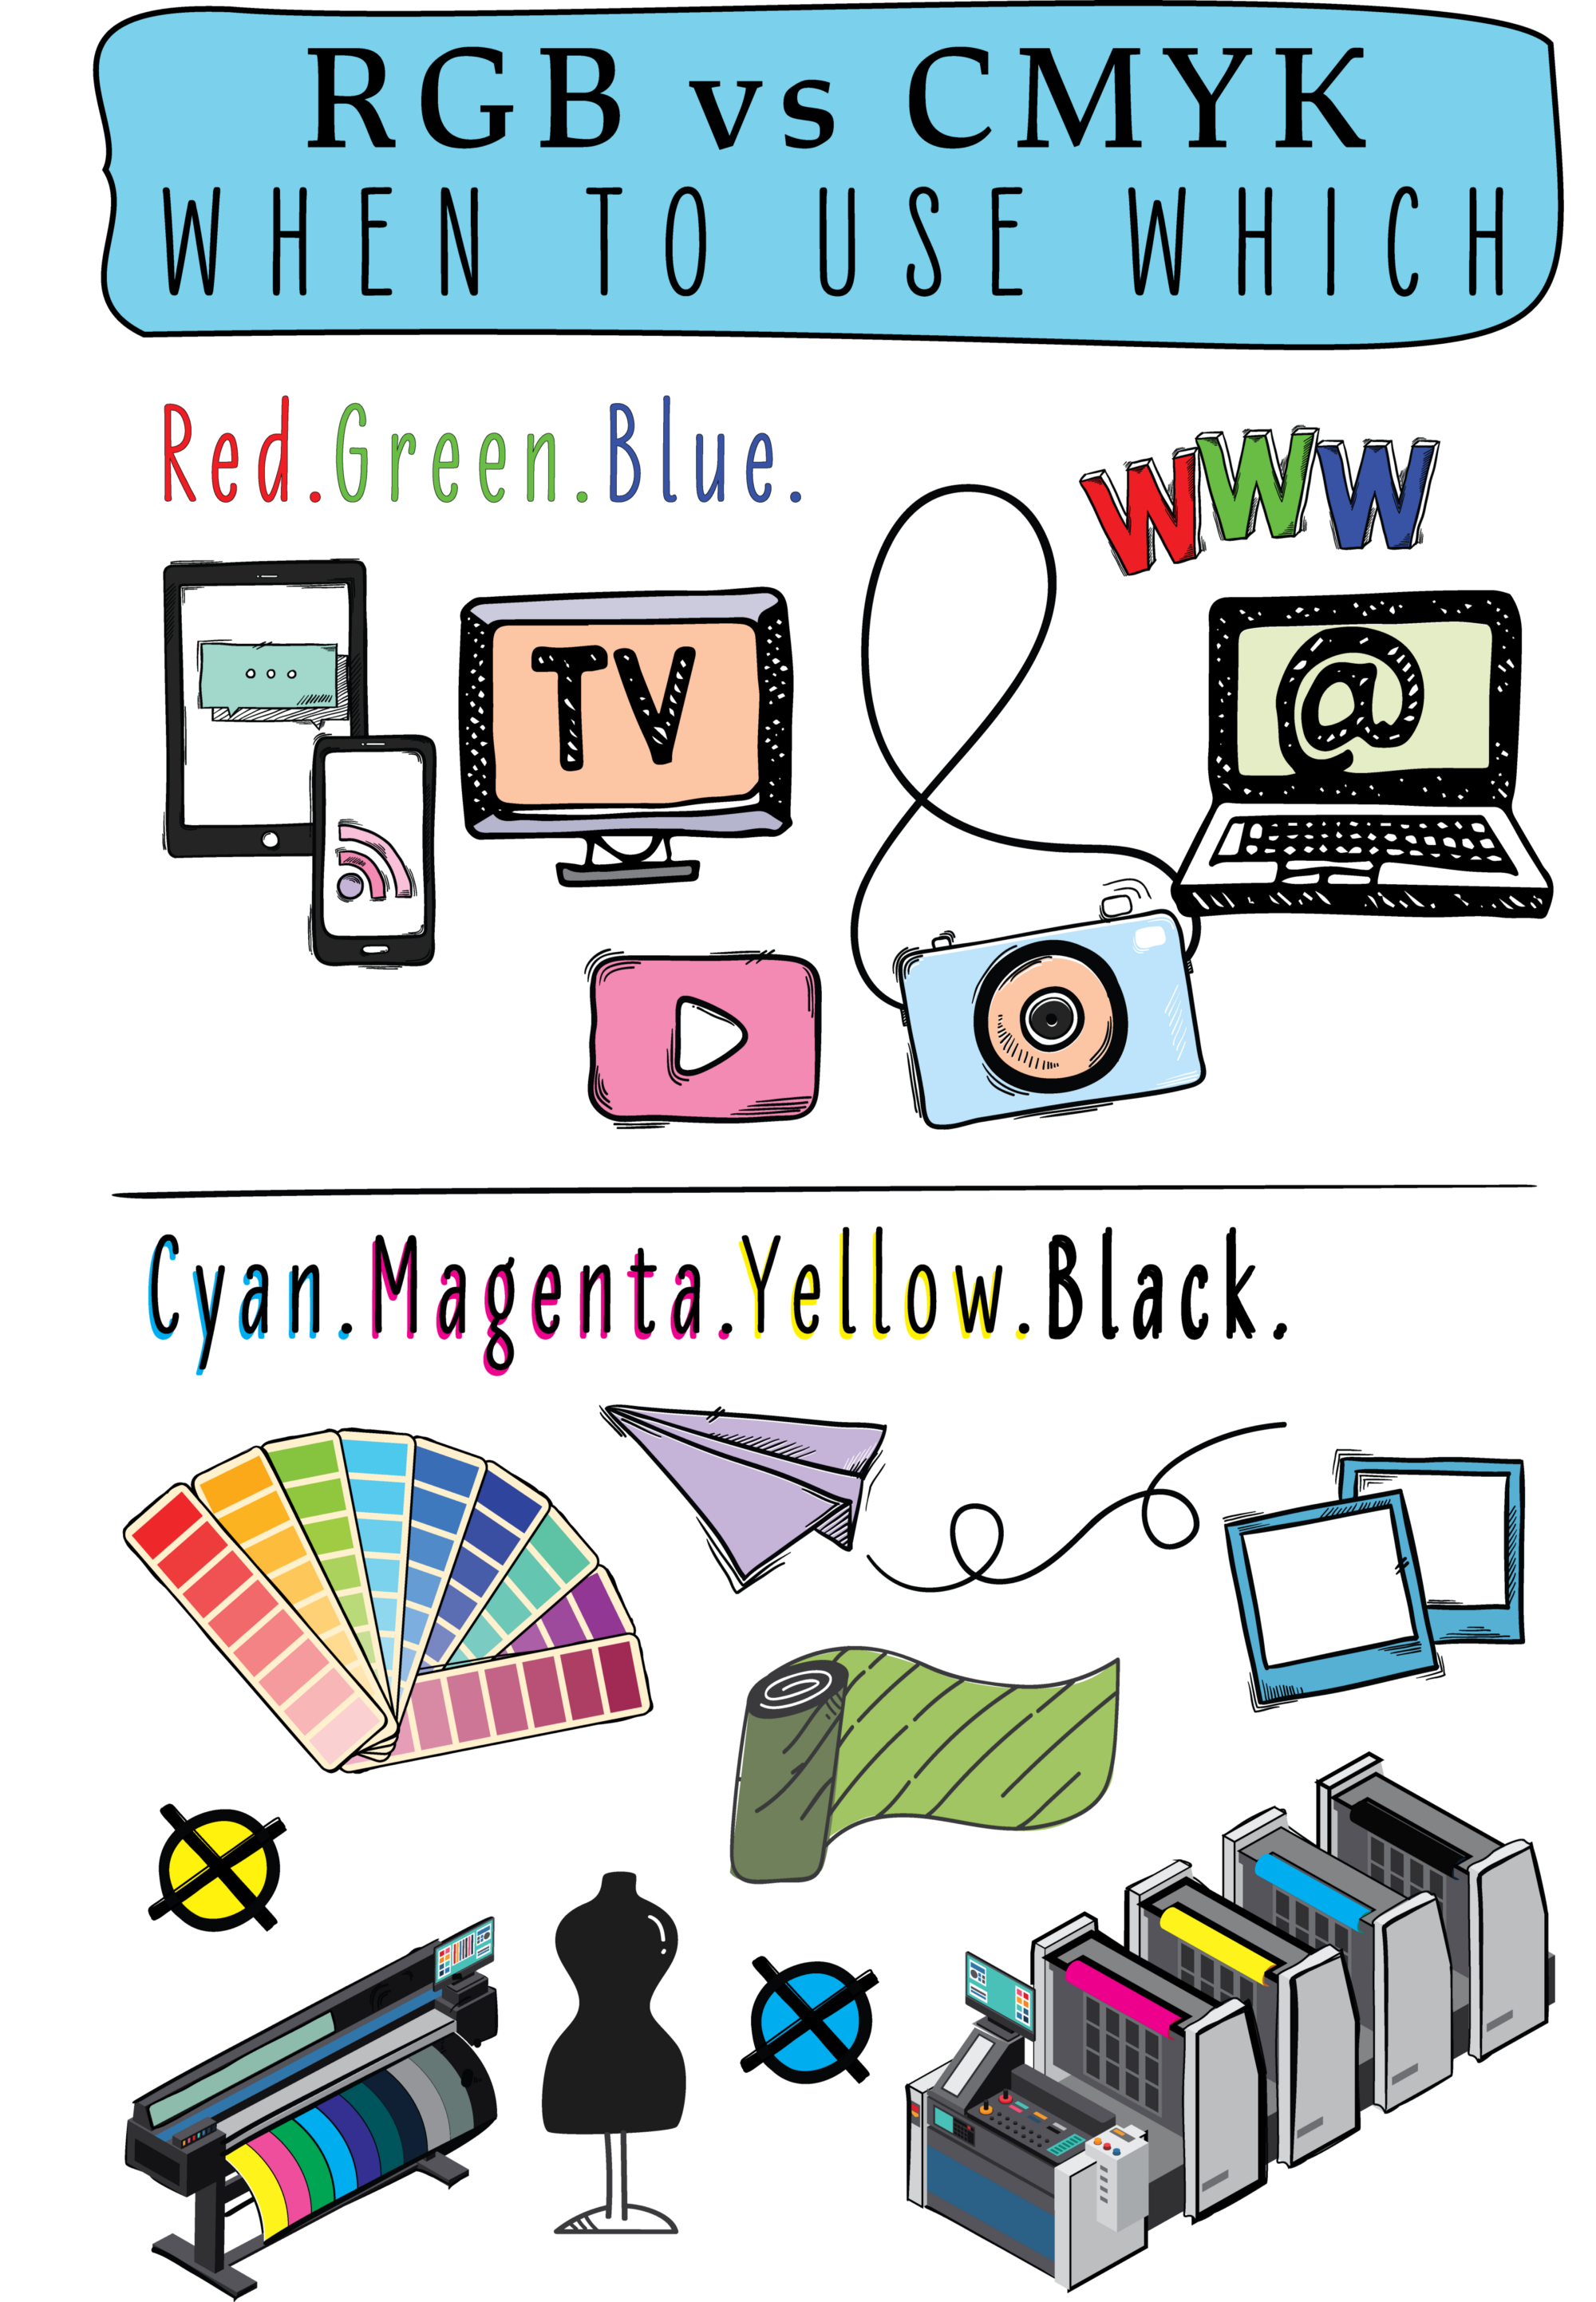 Infographic — RGB vs CMYK — When to Use Which — doodles of various technologies that use RGB and CMYK, Pantone fan deck, offset print, TV, computer, inkjet printing, camera, tablets